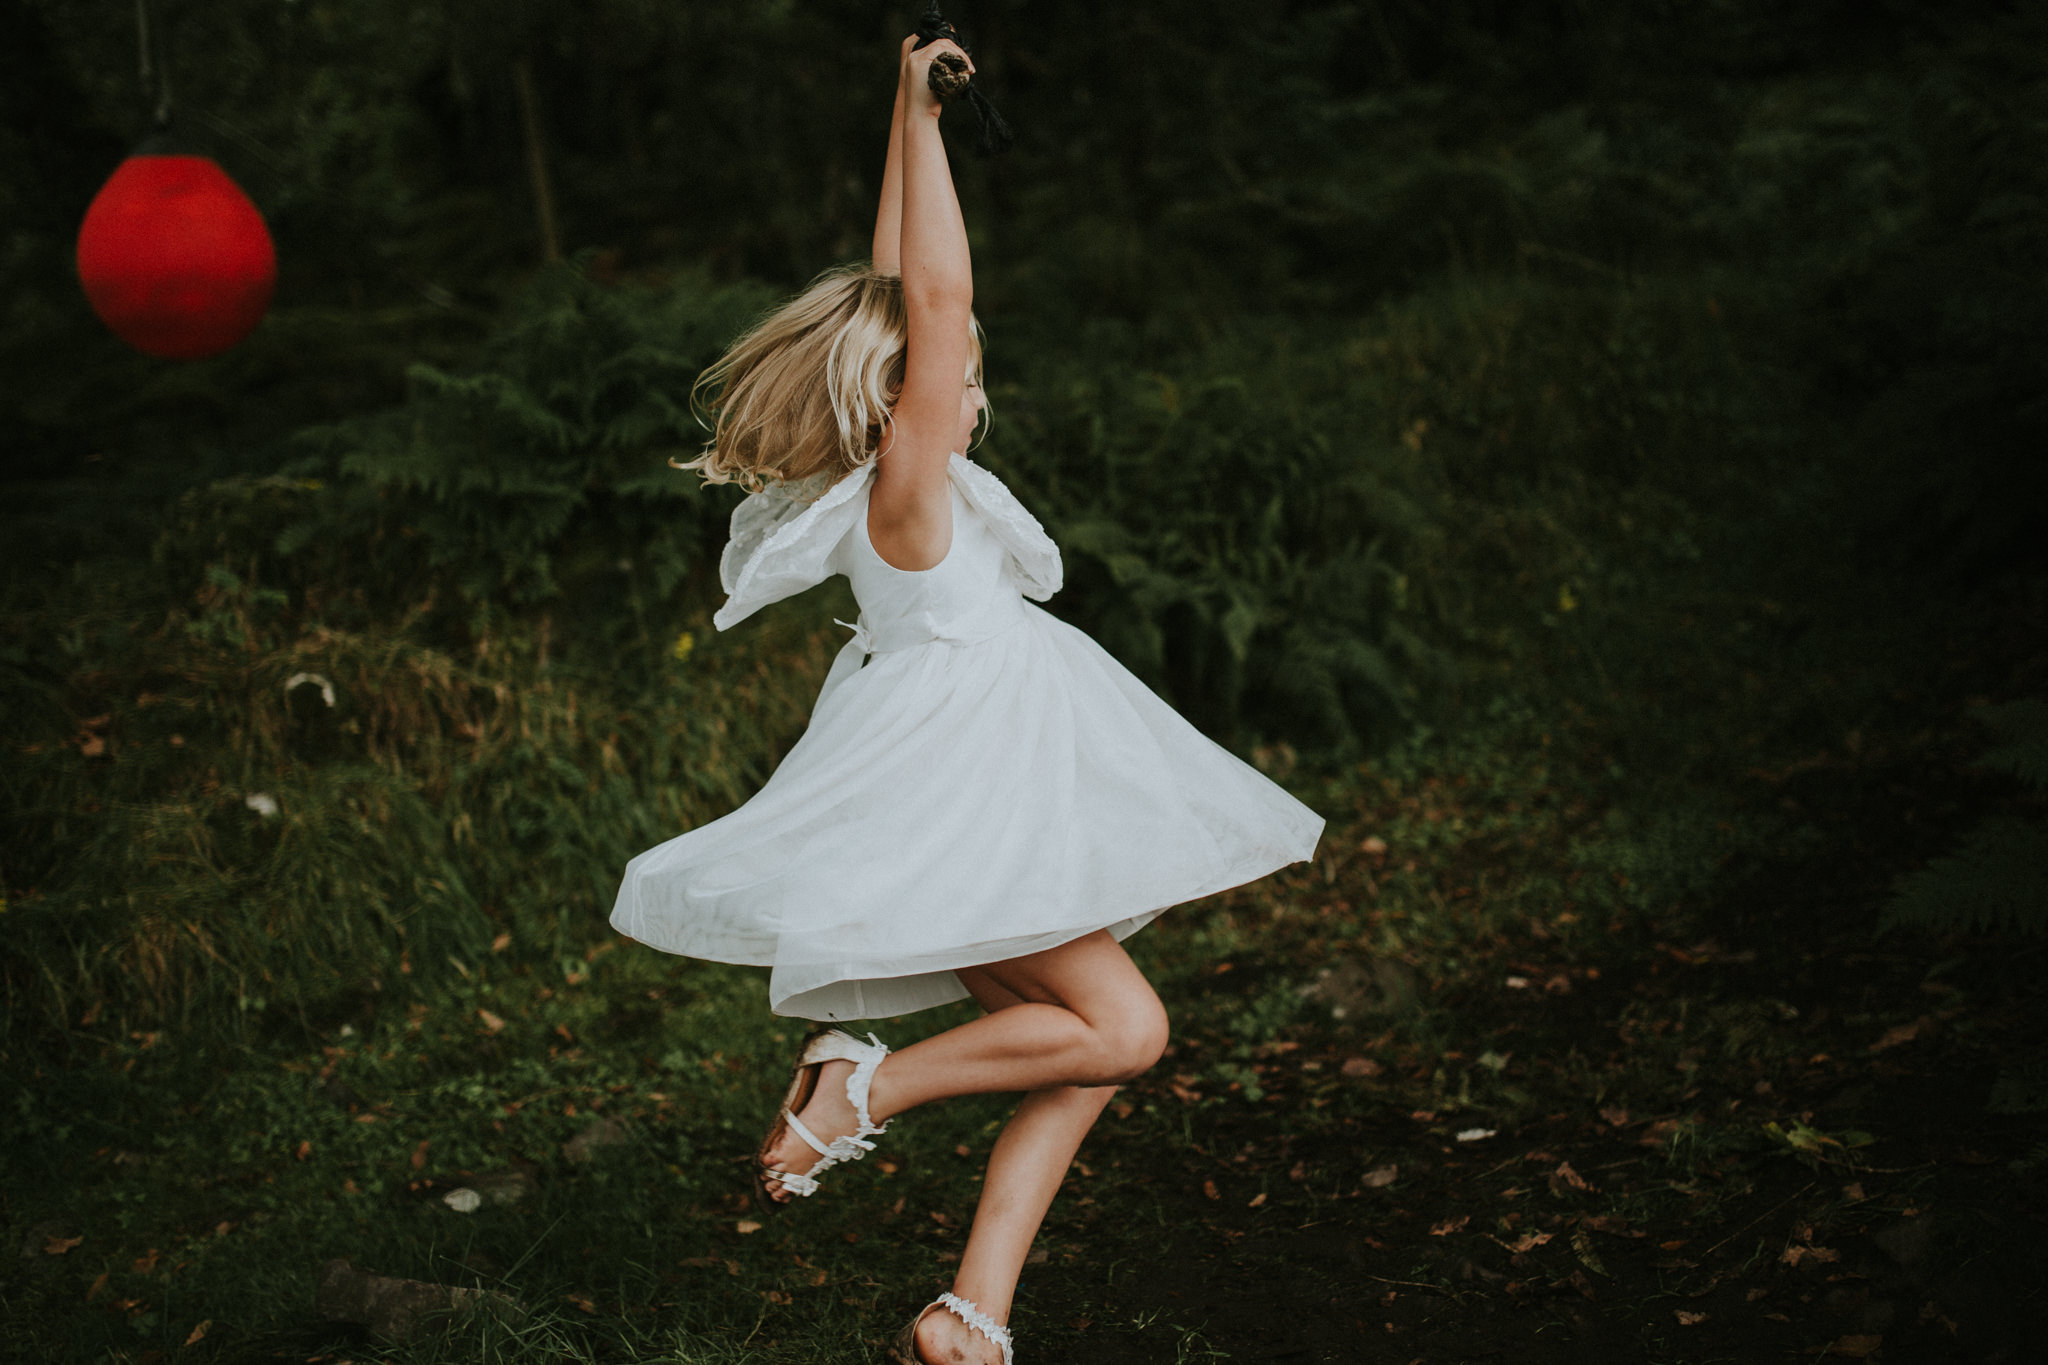 A girl is dancing in the meadow.